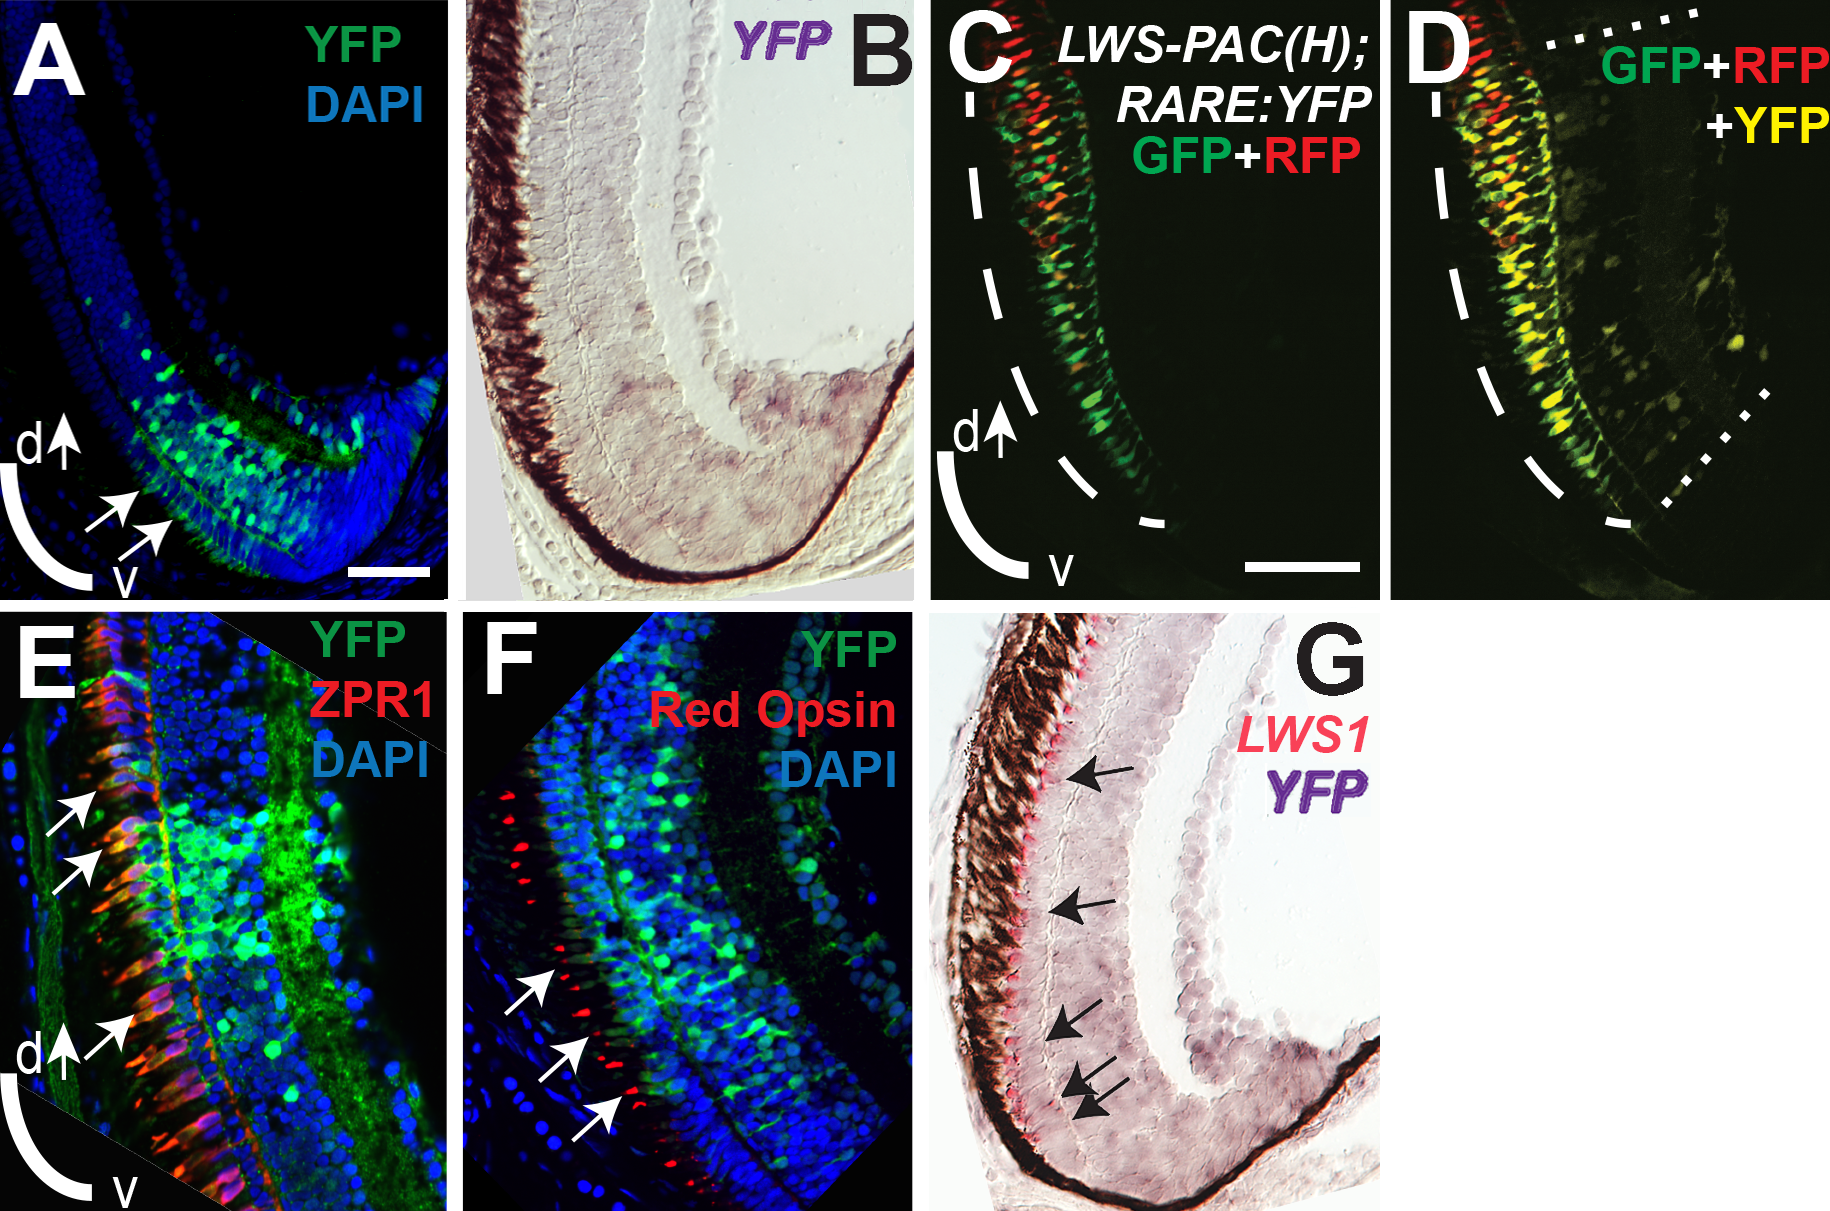 RA signaling continues in juvenile retinas and the signaling domain includes red opsin+, <i>LWS1</i>+ cones.